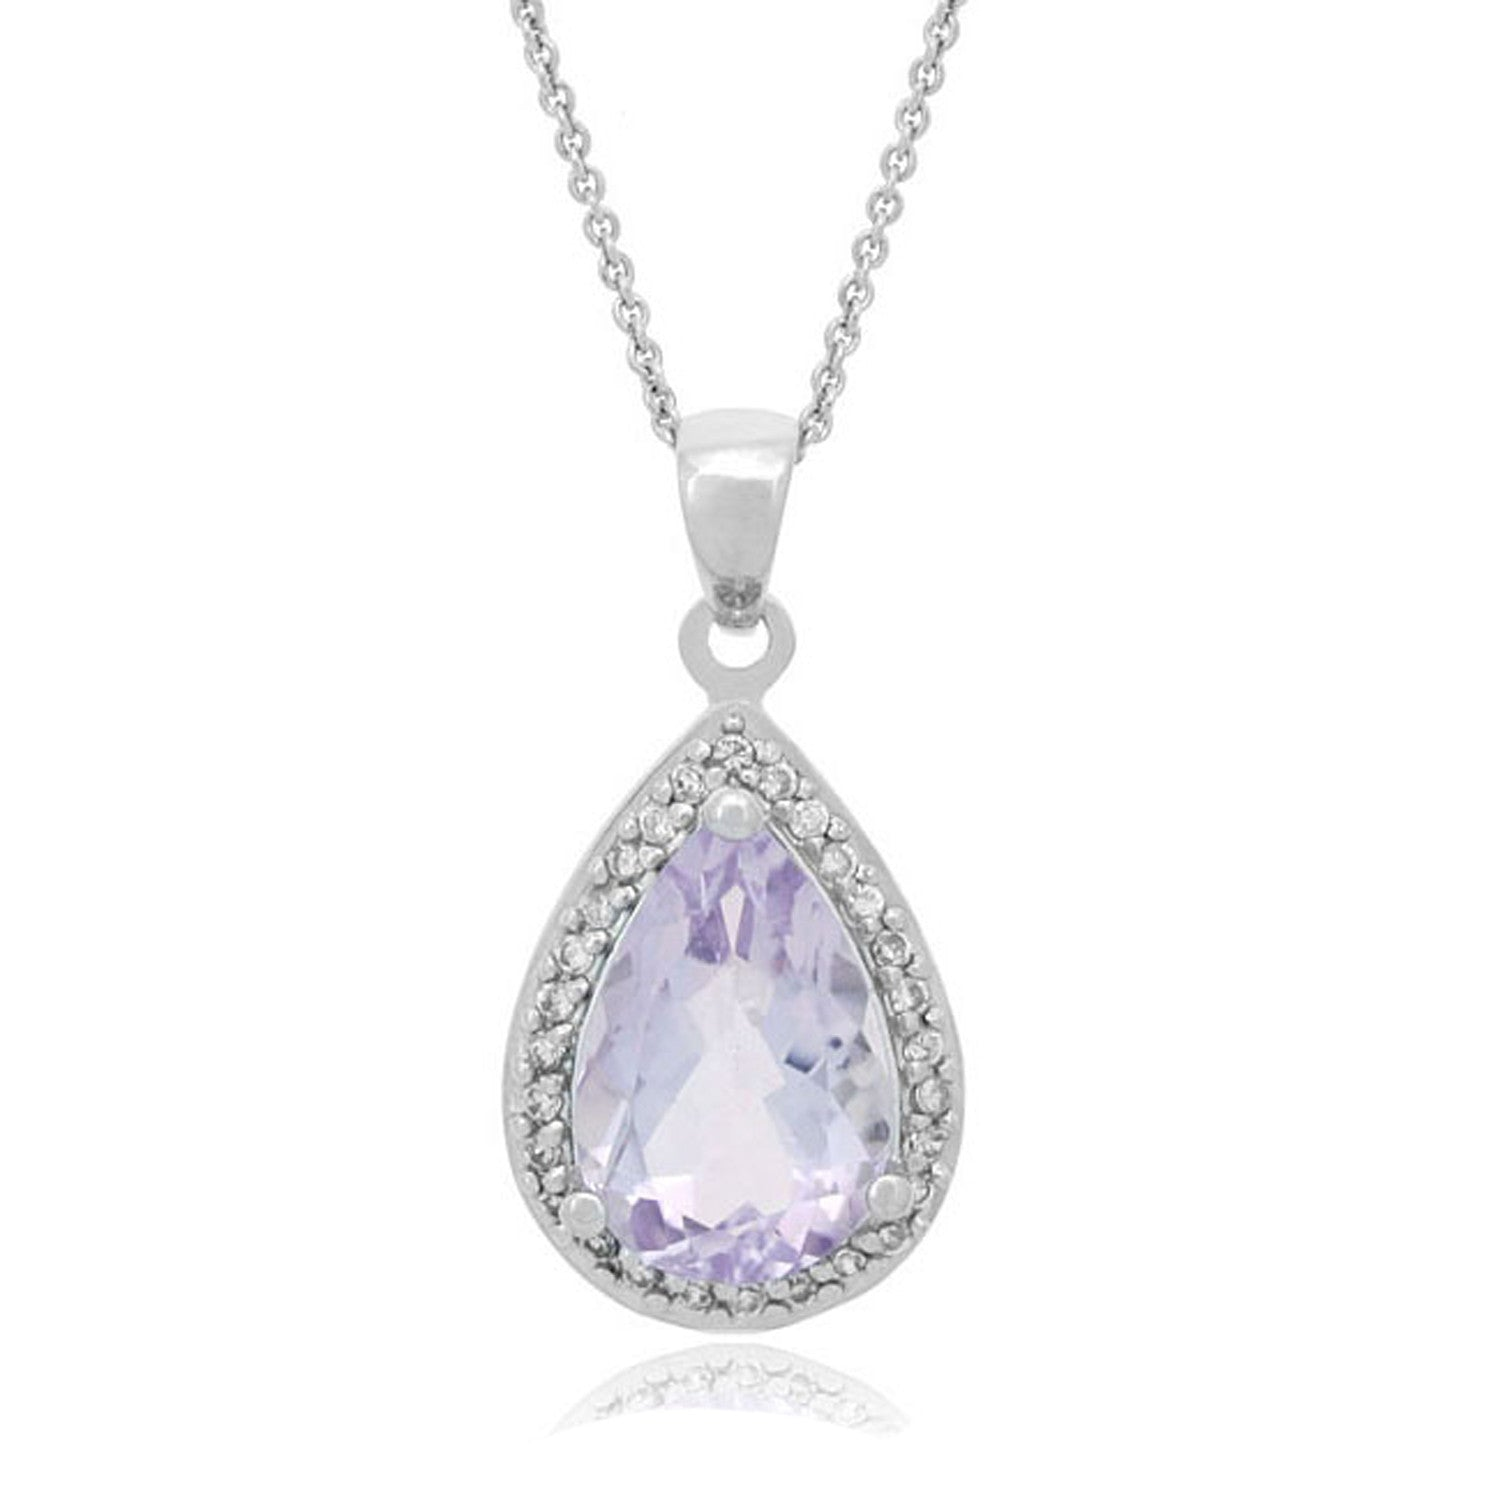 Teardrop Necklace With Cubic Zirconia & Gemstone Accents - Silver / Rose De France